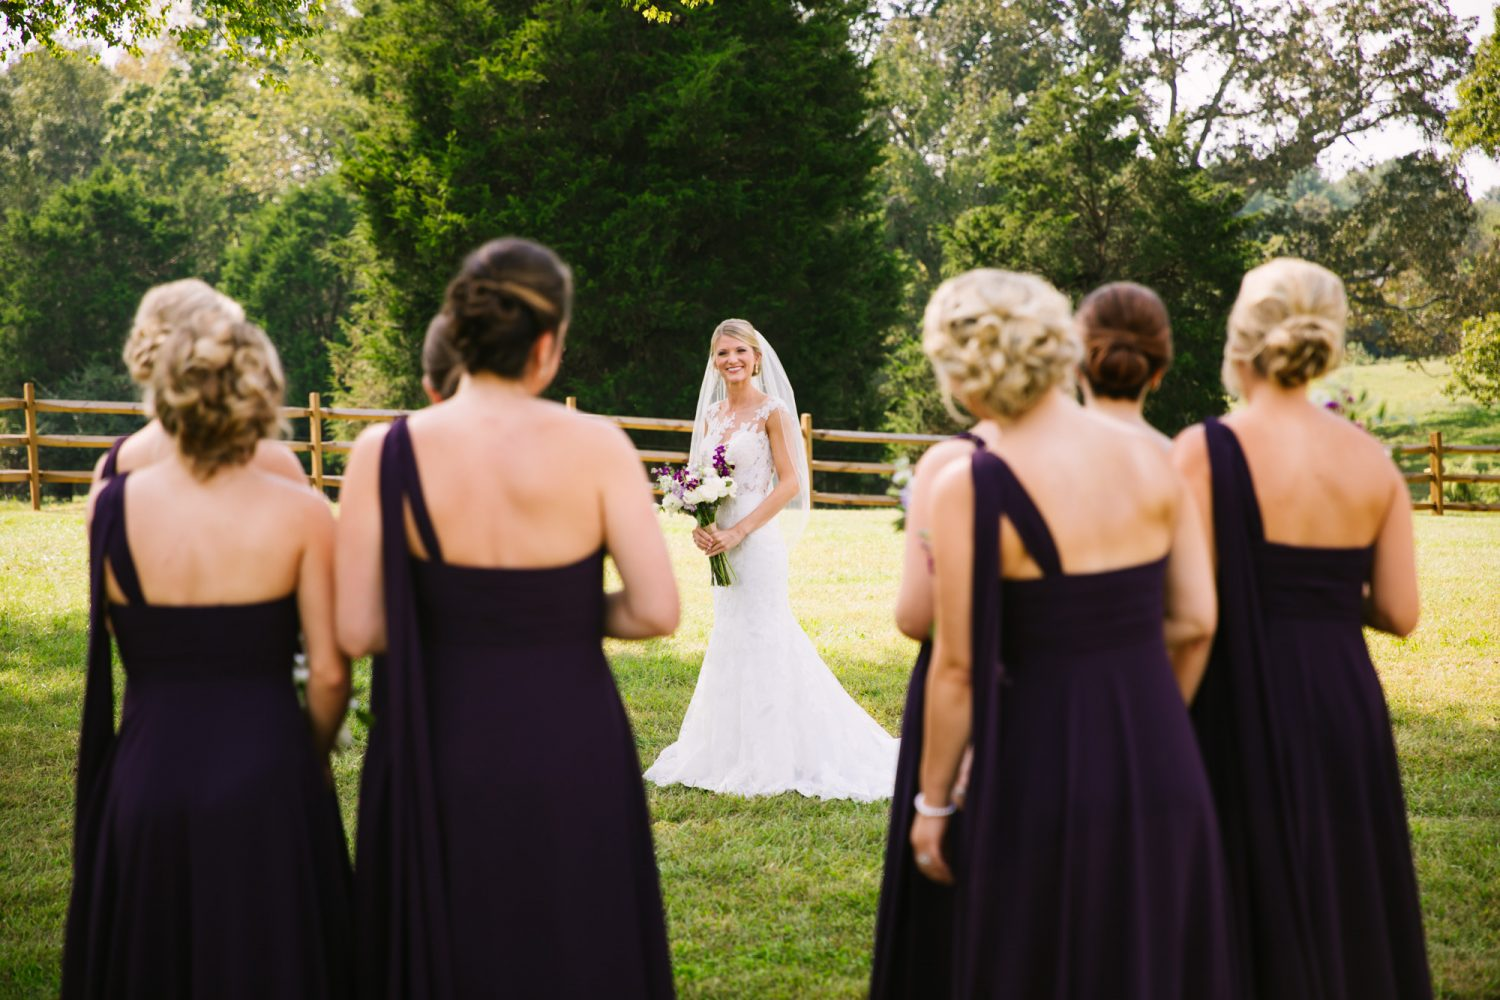 Waynesville, NC Wedding Photography | Bride looking at Bridesmaids